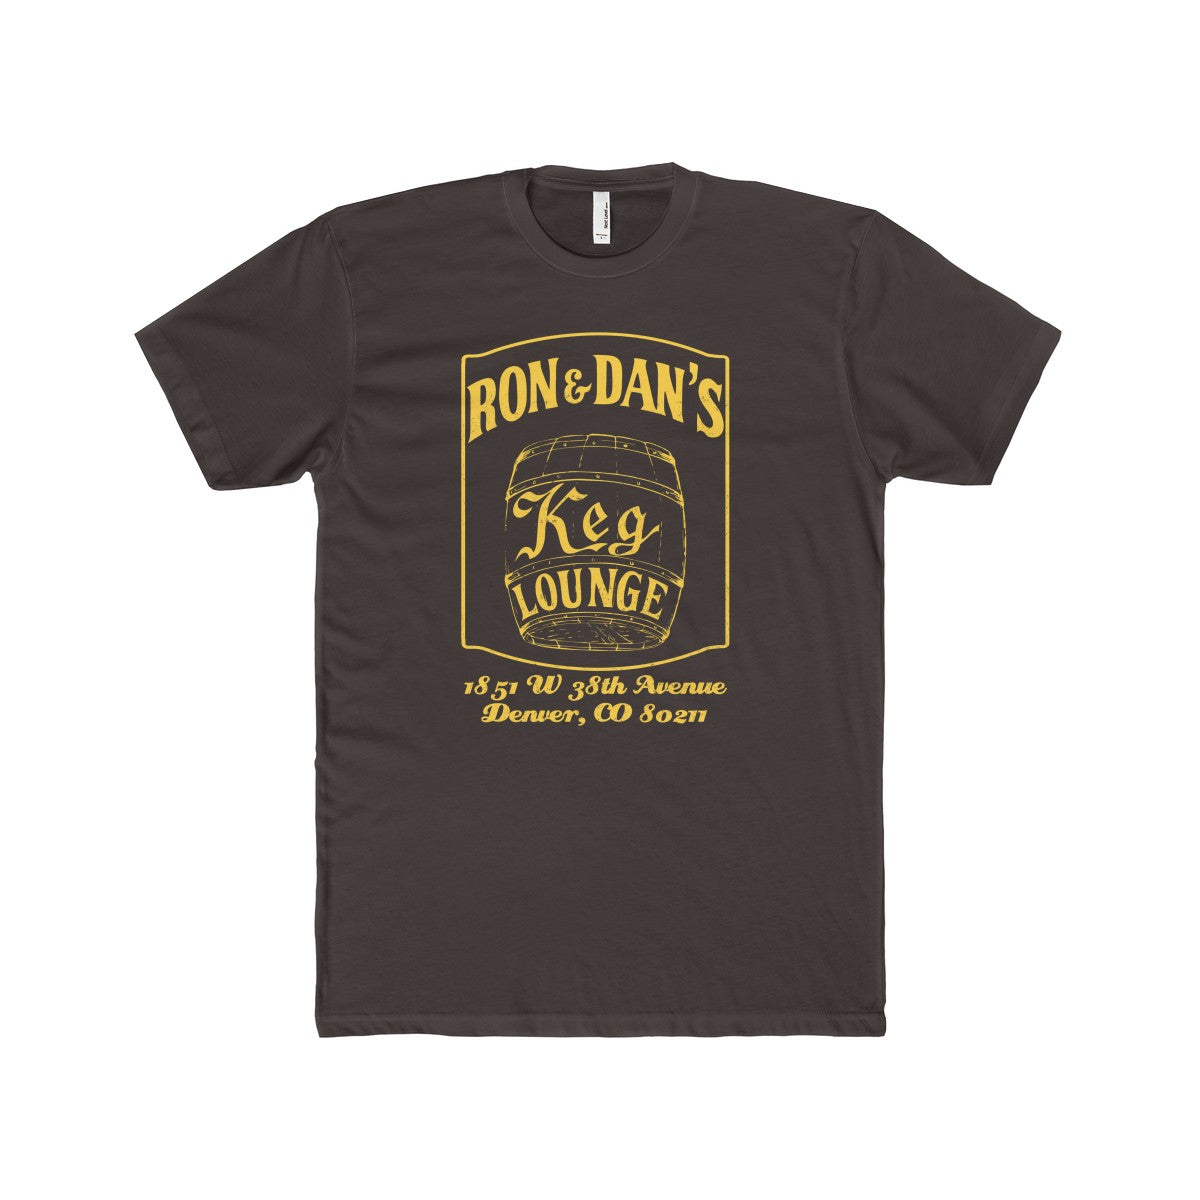 Ron & Dan's Keg T-Shirt - Cotton Tee